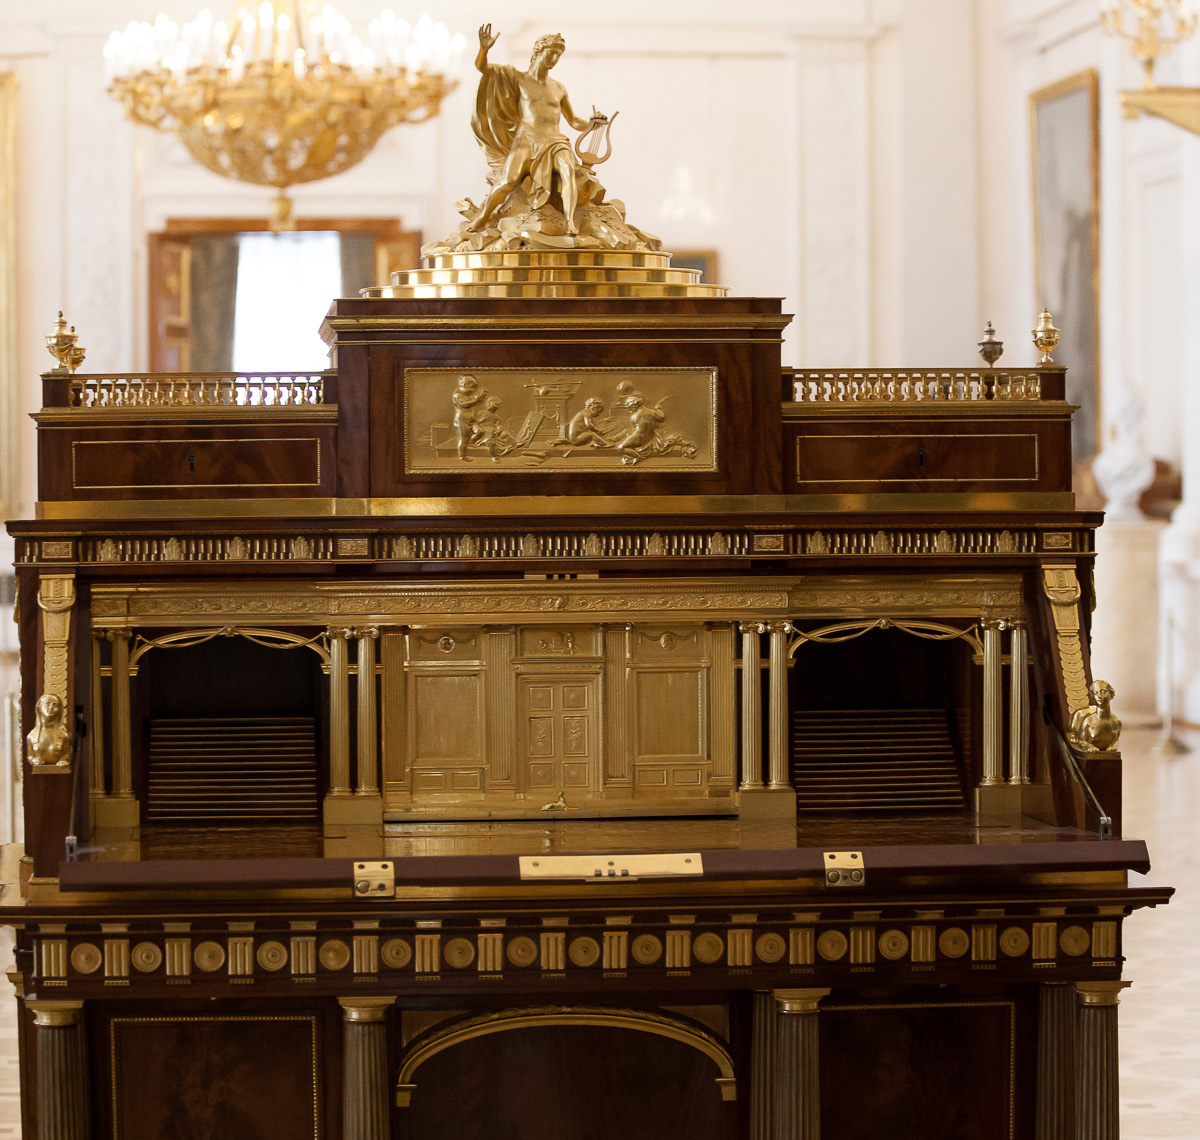 Roentgen furniture - The Apollo Bureau